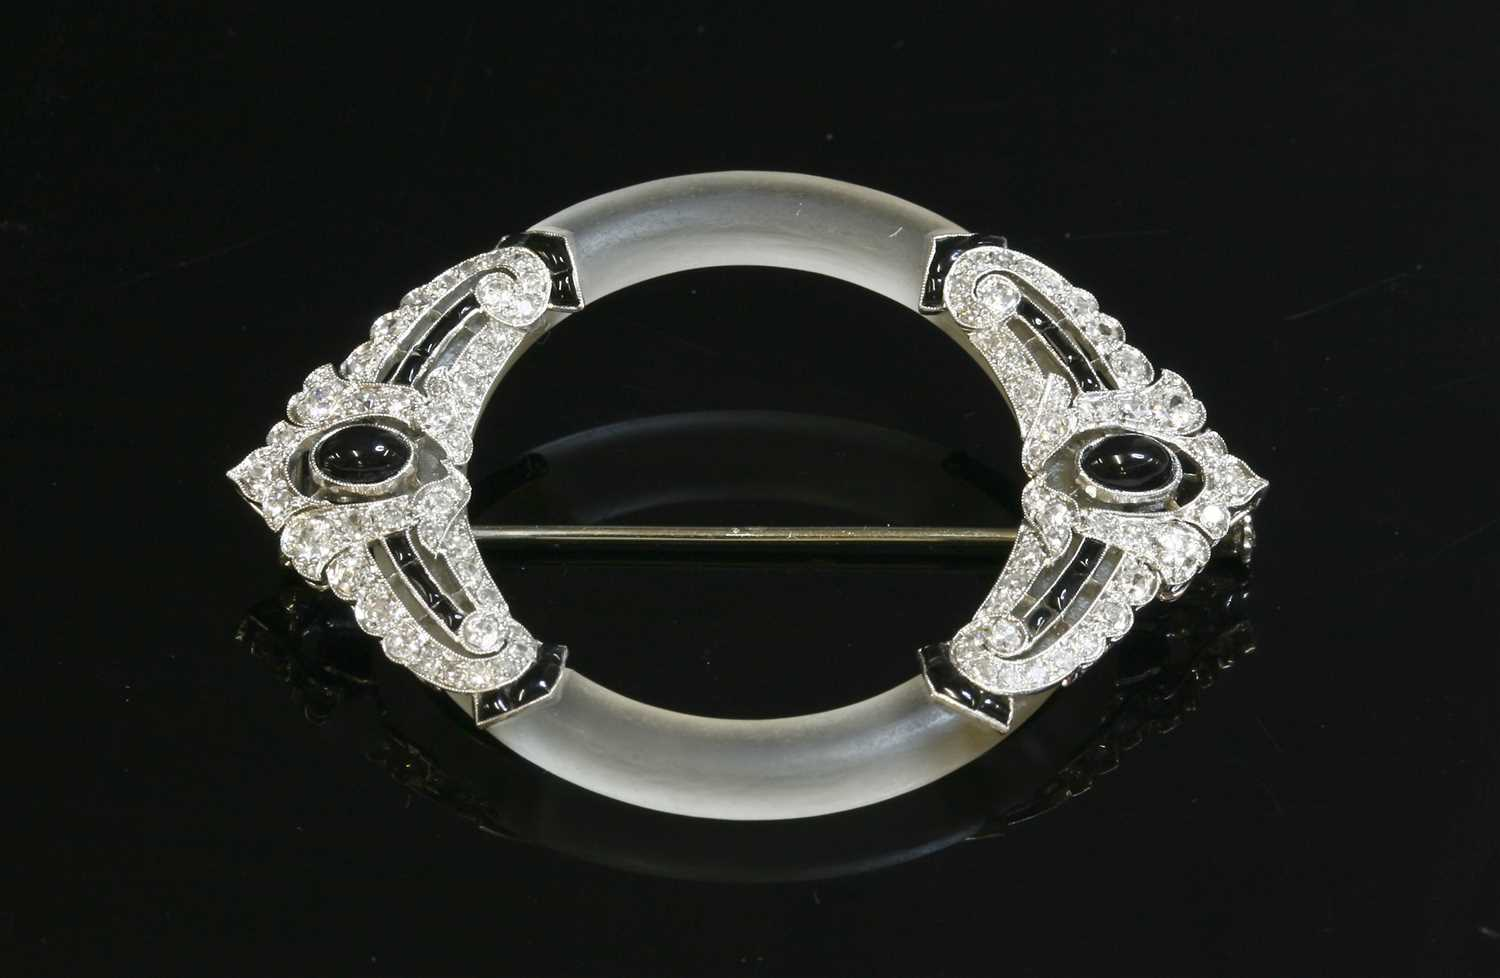 Lot 198 - A French Art Deco platinum, gold, rock crystal, onyx and diamond brooch, c.1925